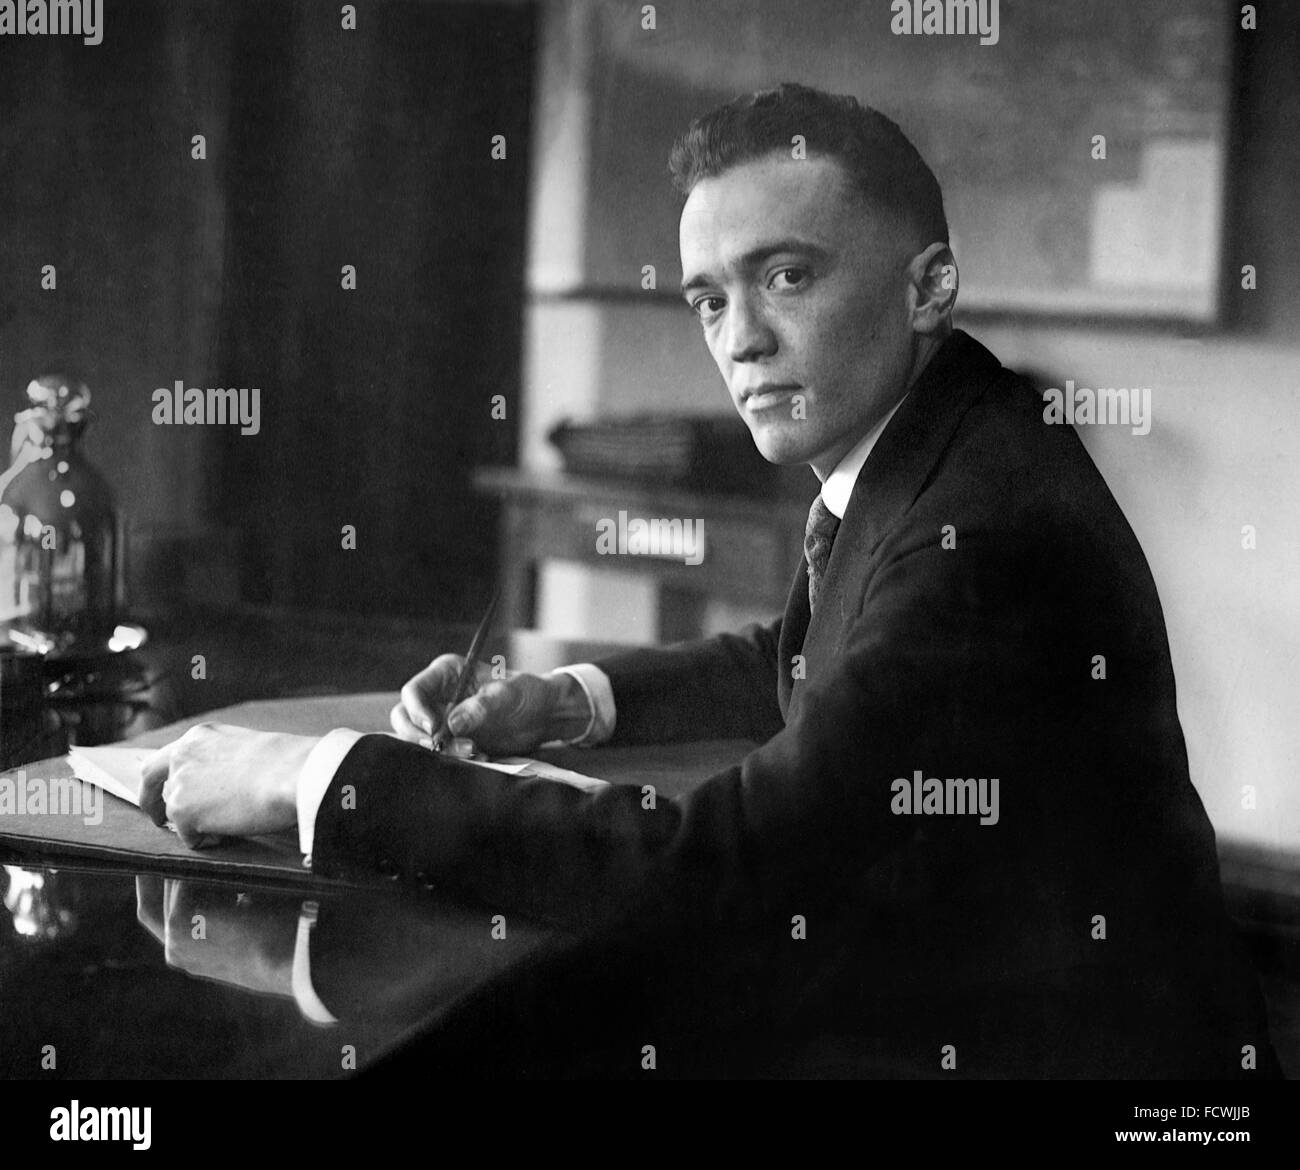 J Edgar Hoover, the first Director of the Federal Bureau of Investigation (FBI) in the USA, December 1924. When - Stock Image